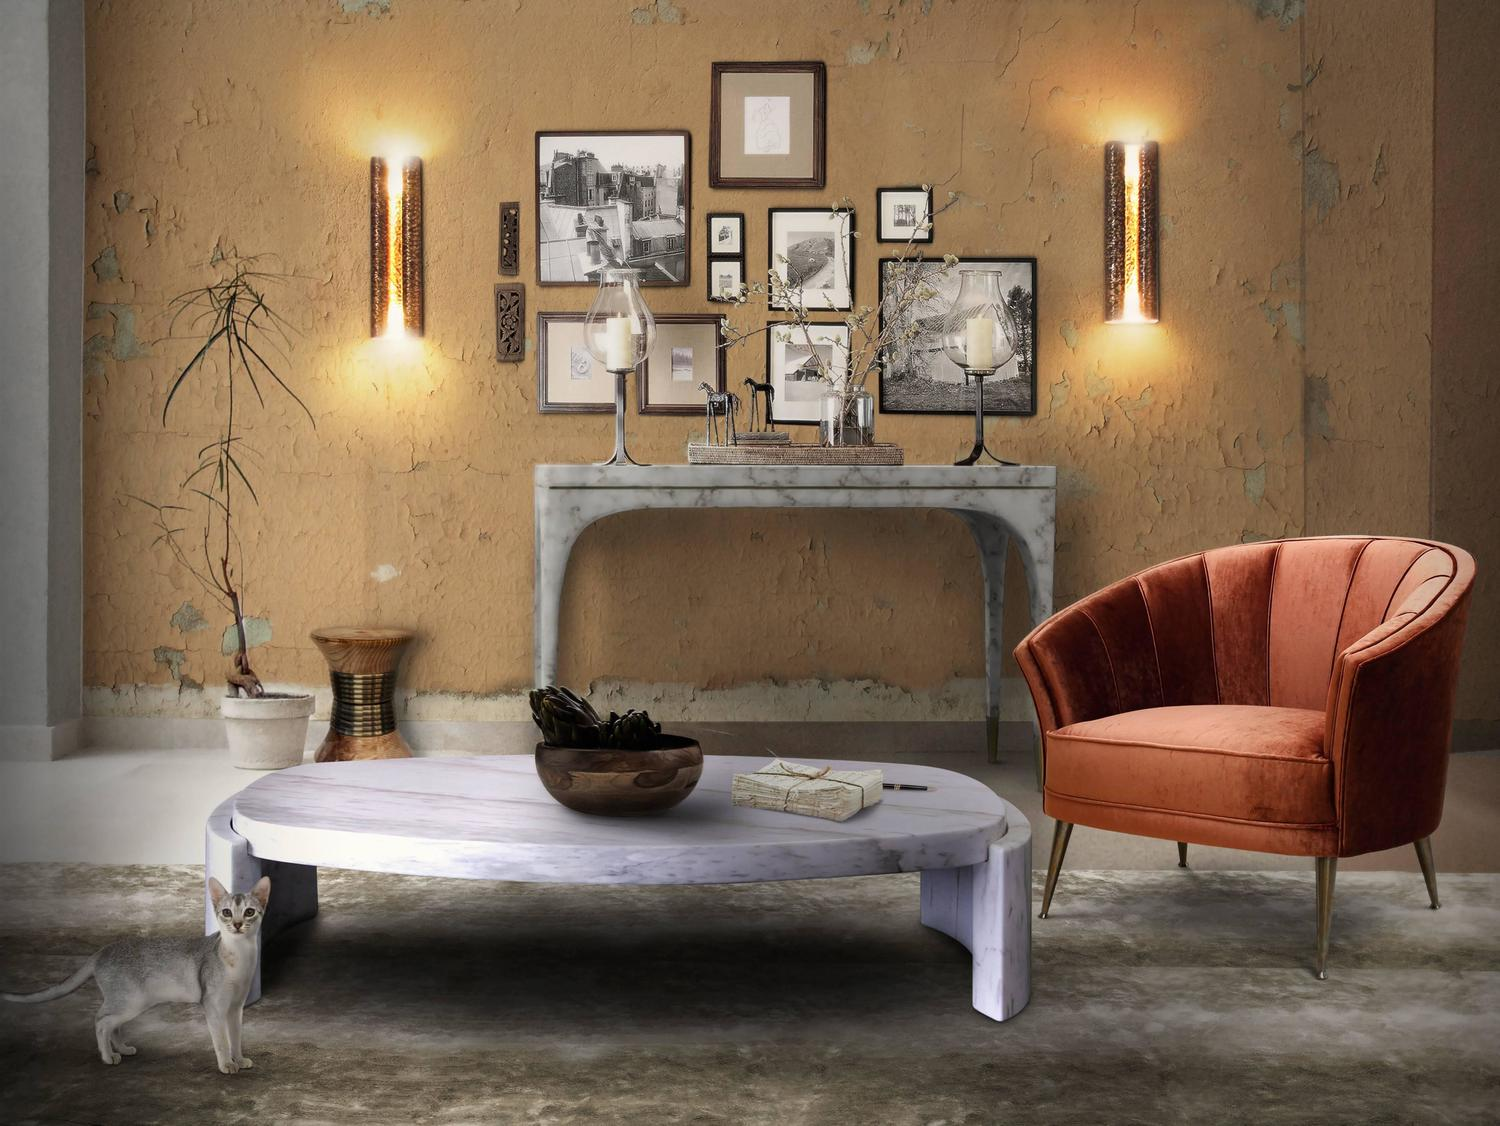 Marble Coffee and Side Table Designs On Home Interiors brabbu ambience press 21 HR z